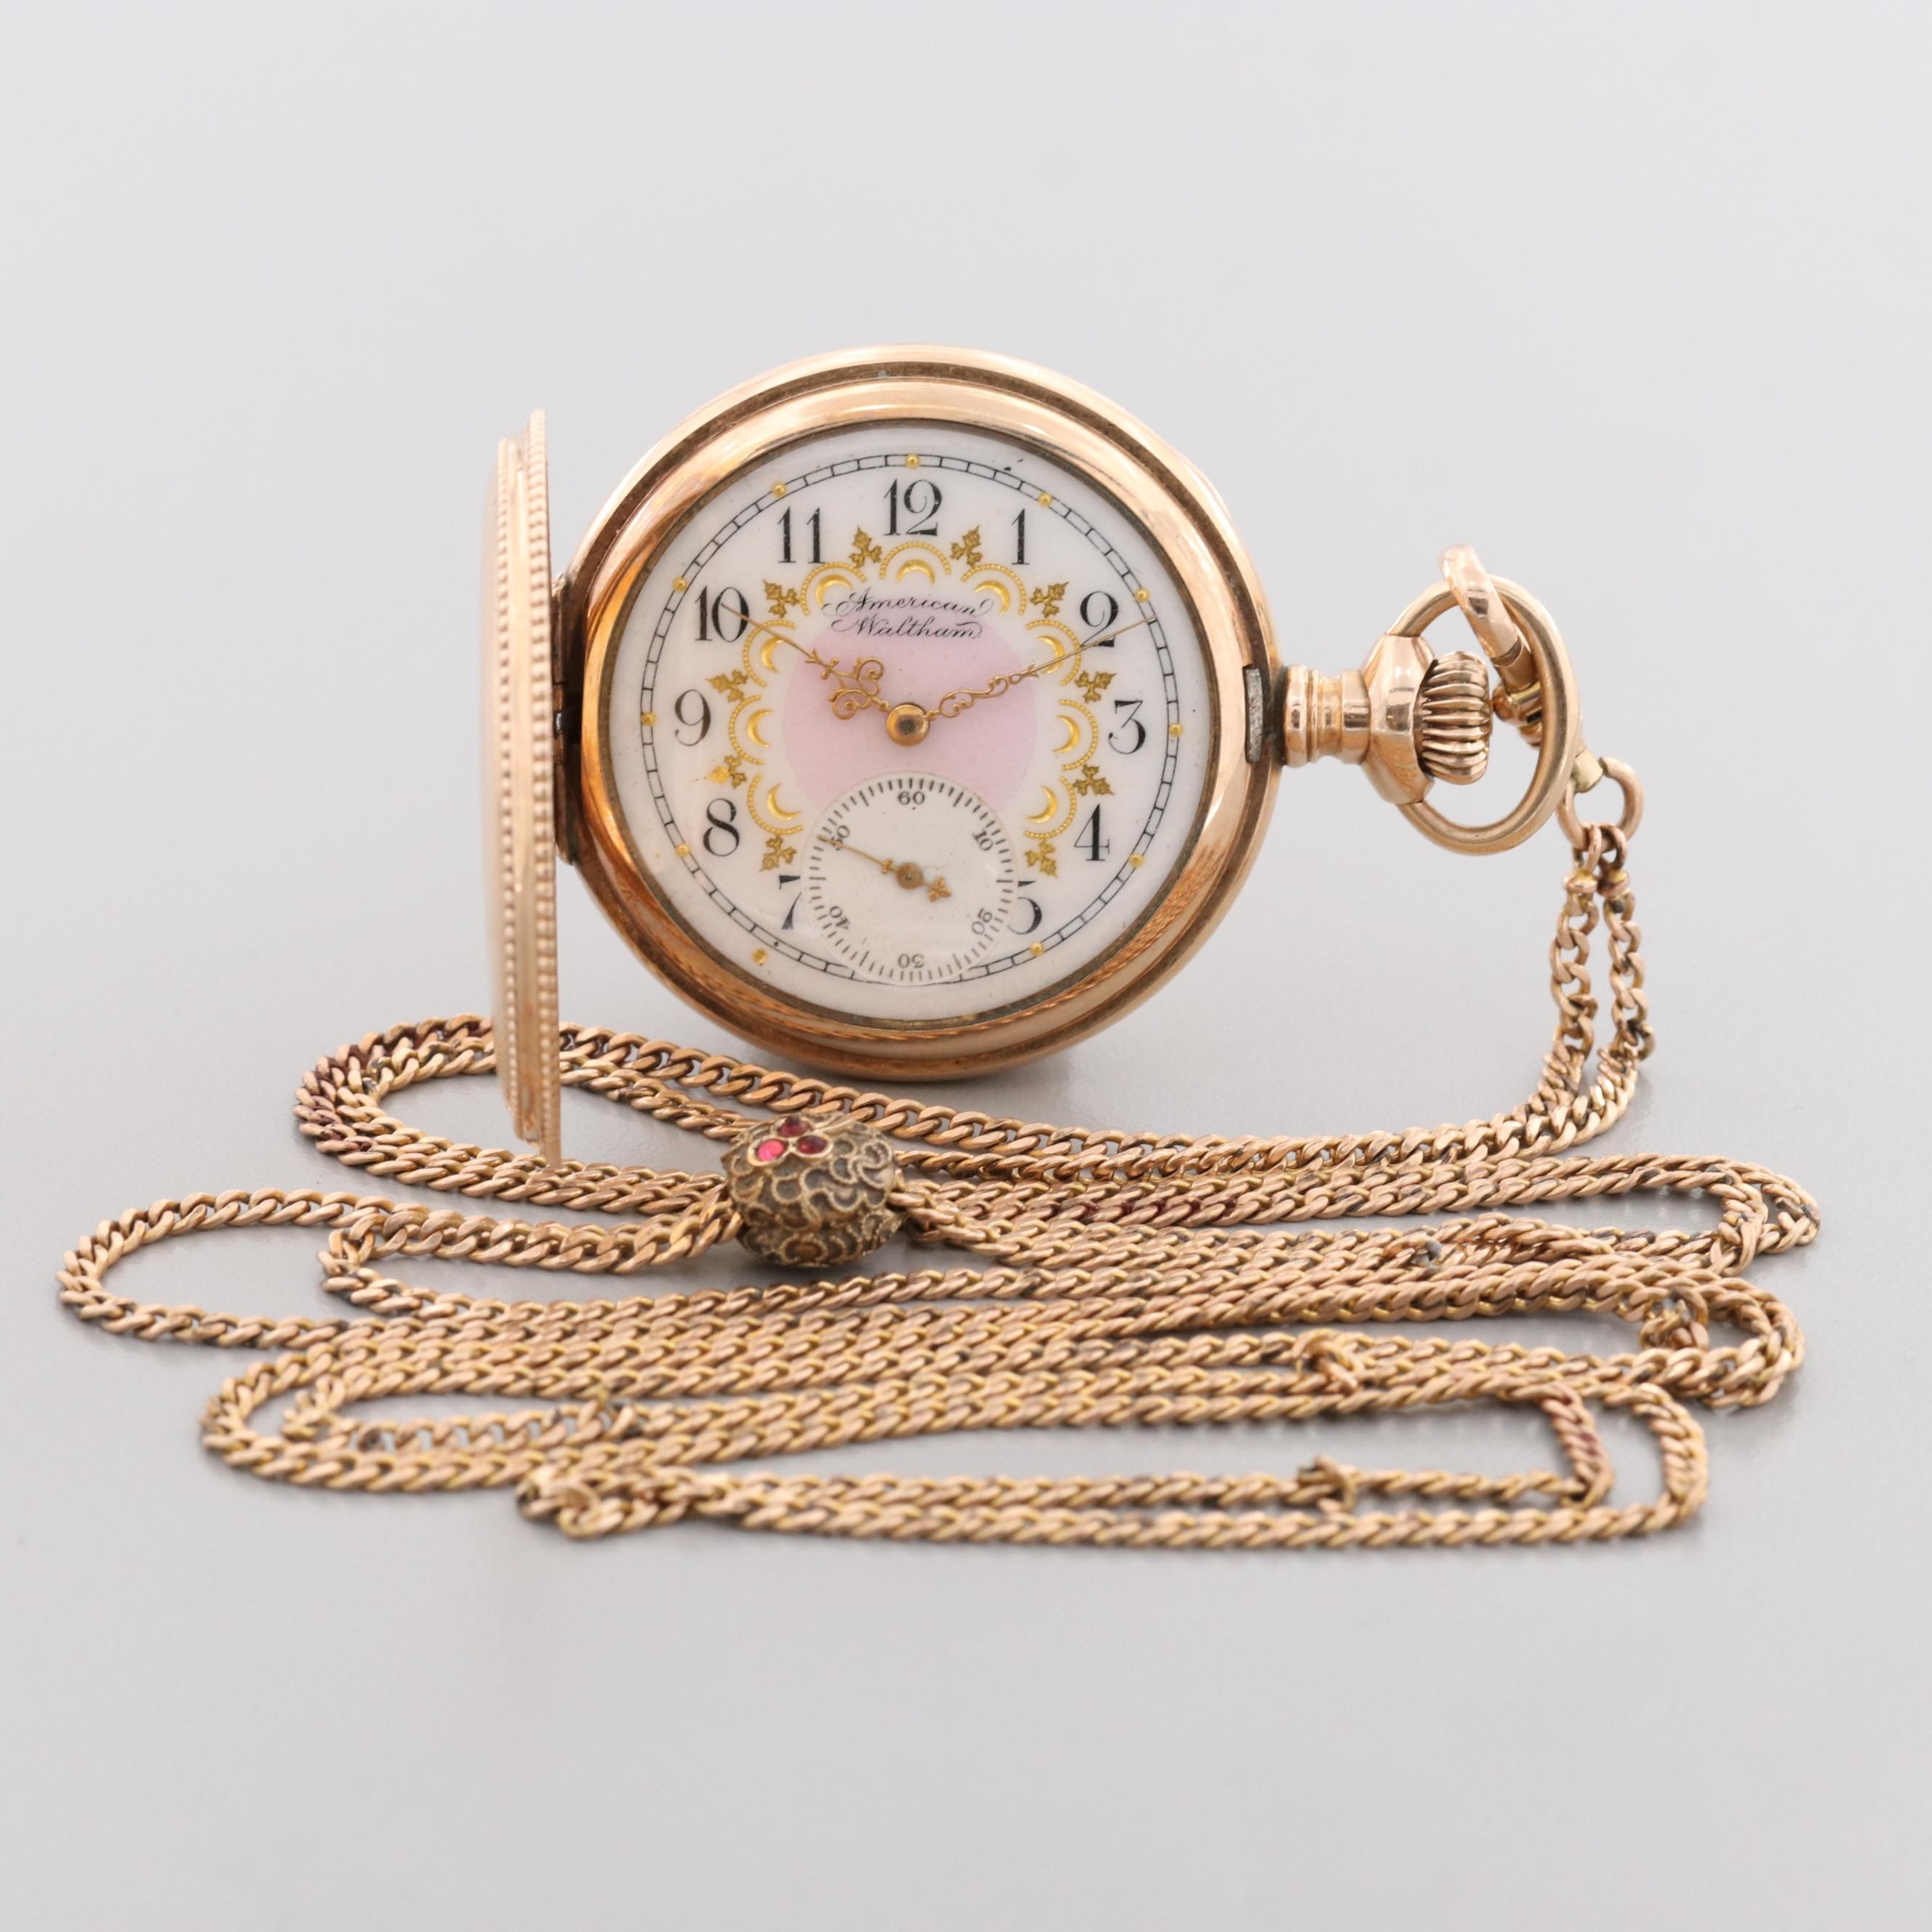 Antique Waltham Gold Filled Hunter Case Pocket Watch and Bolo Chain